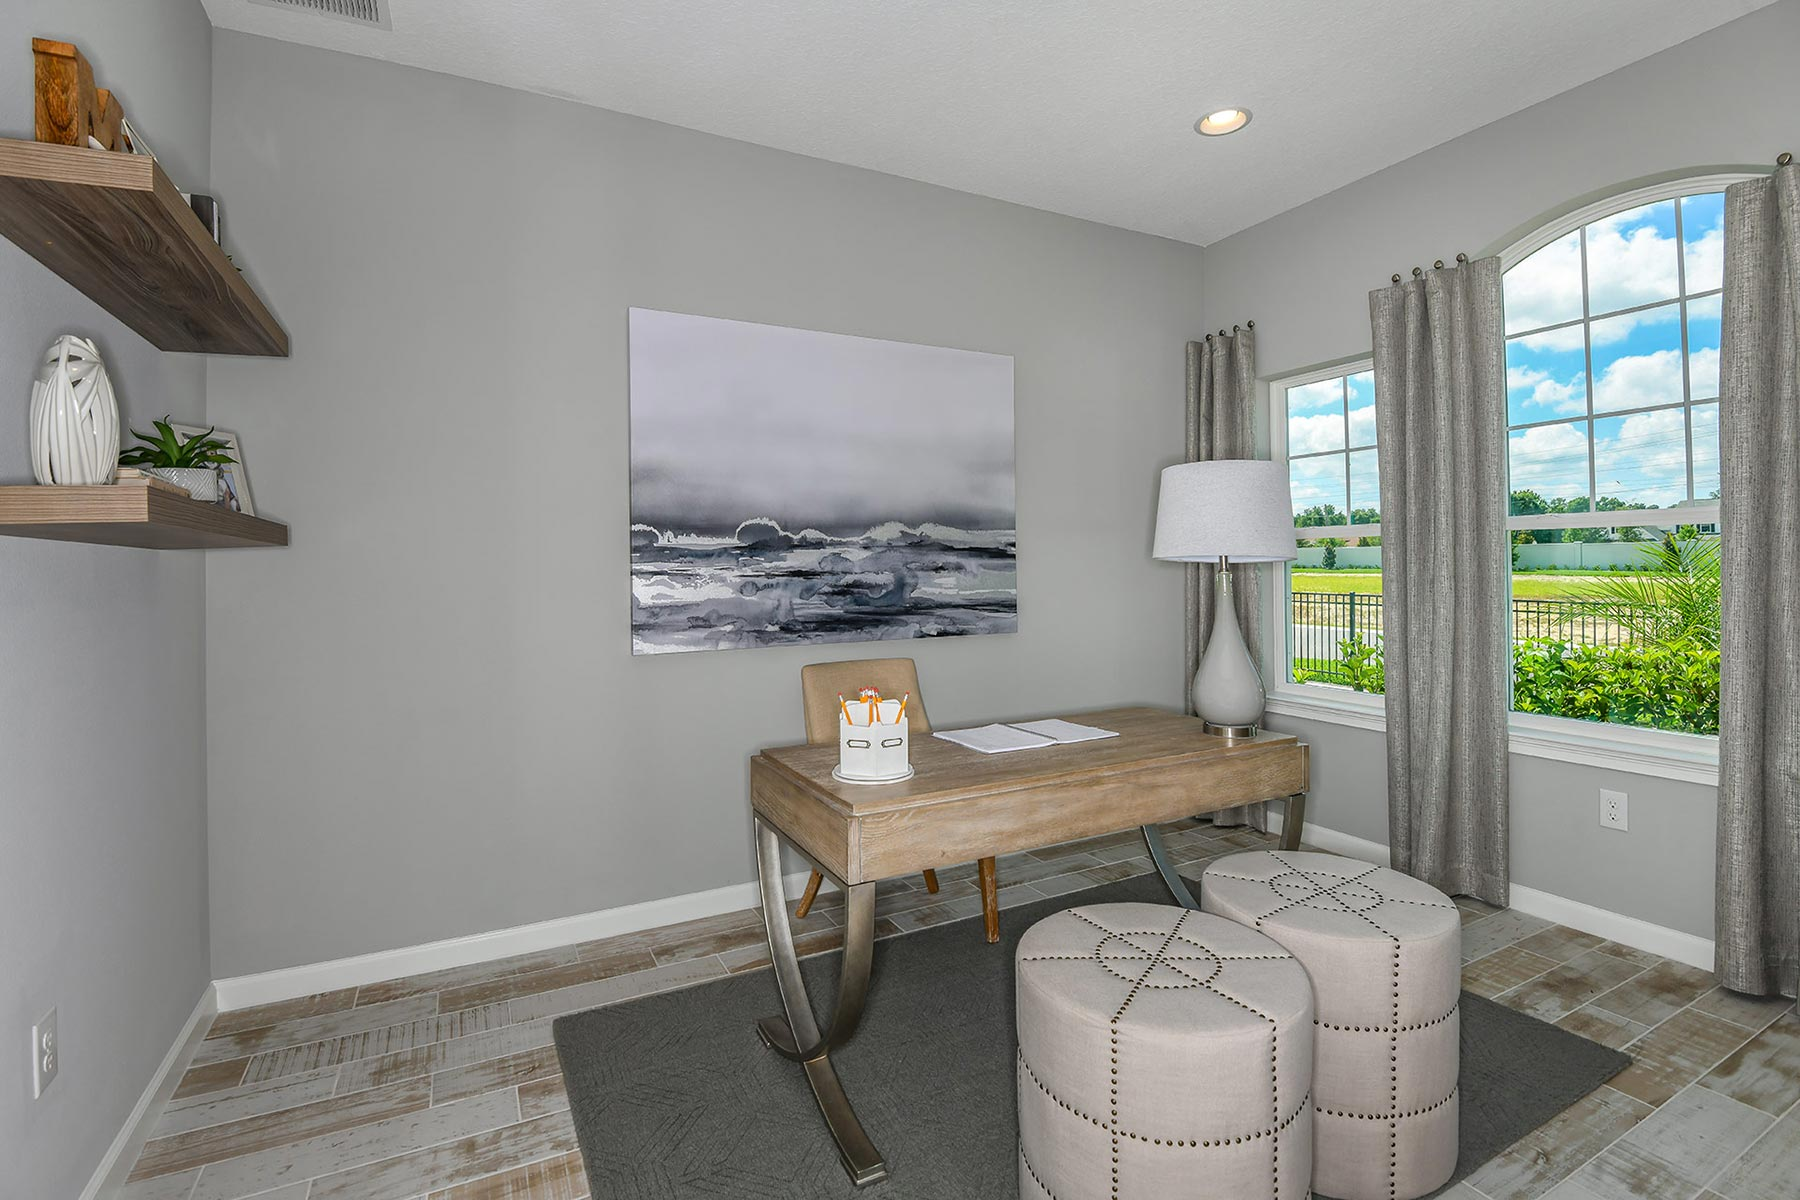 Coquina Plan Study Room at Boyette Park in Riverview Florida by Mattamy Homes